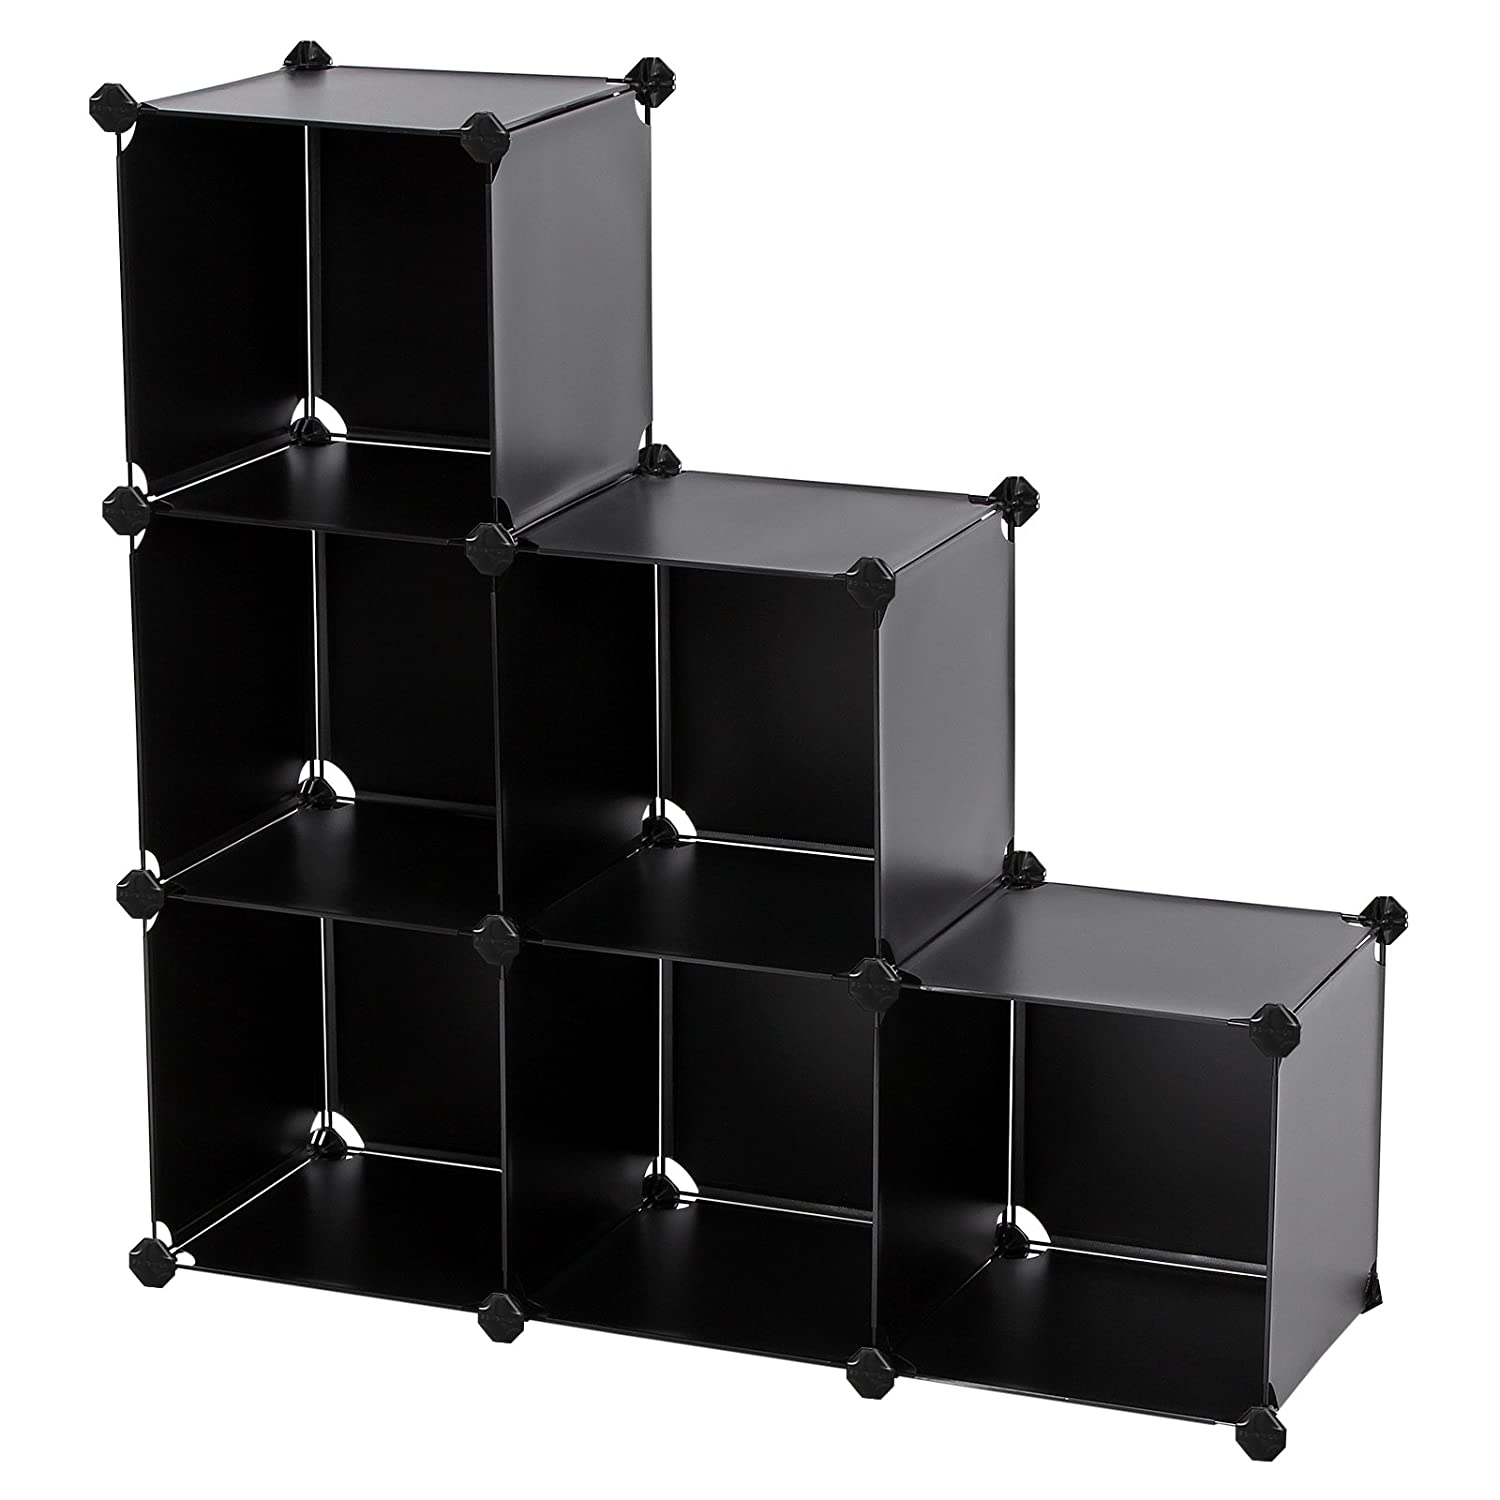 Office Shelving Office Storage Amazoncom Office Furniture - Furniture storage